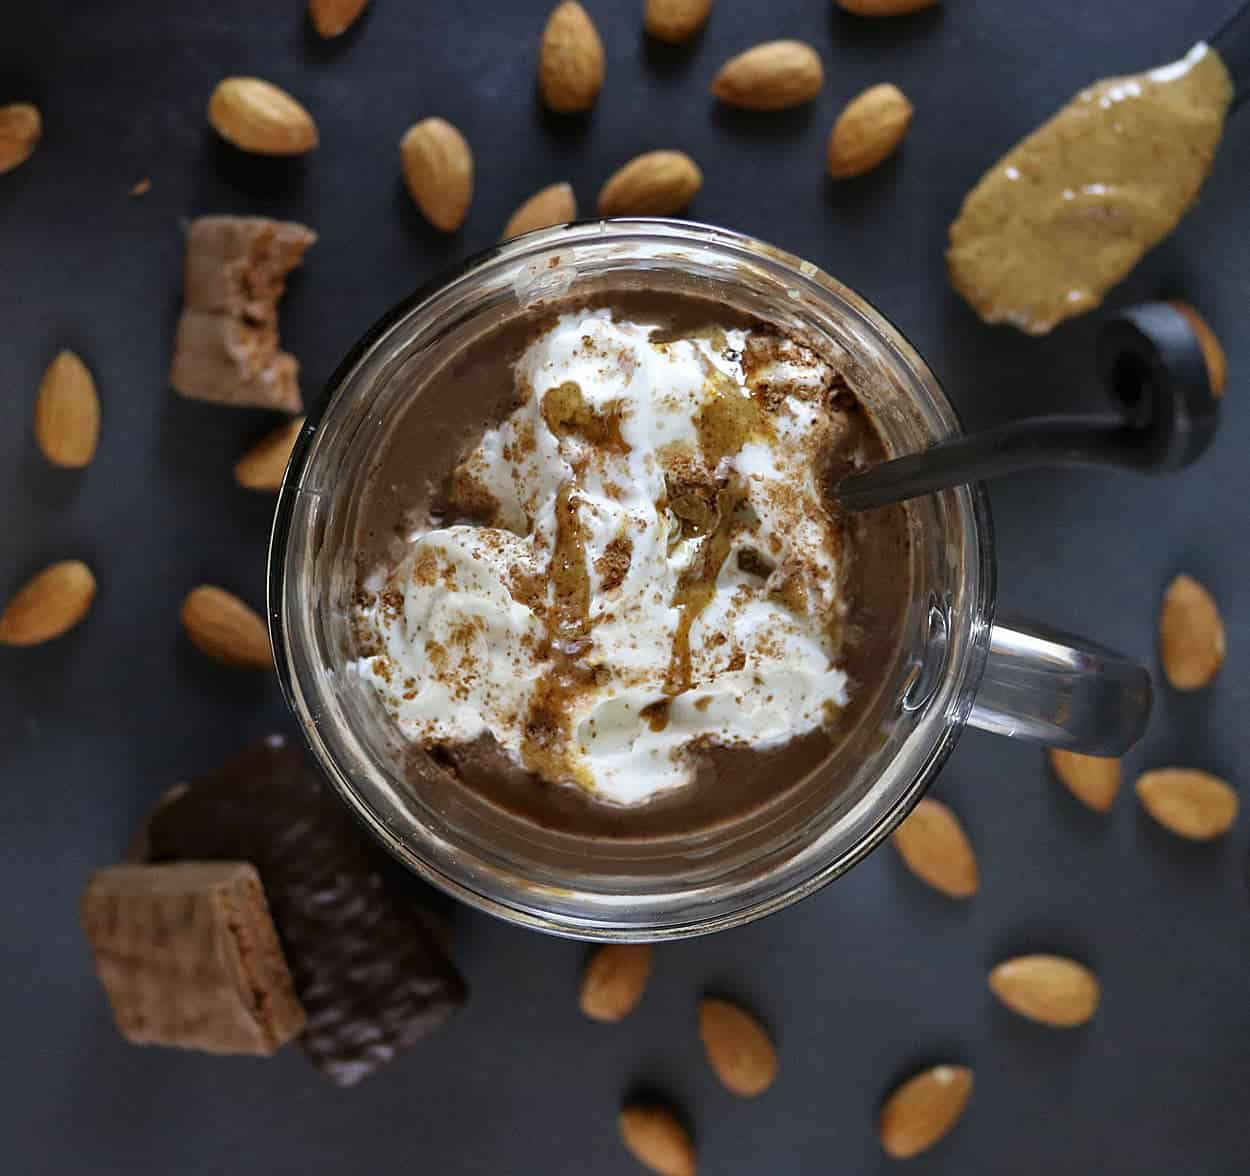 Almond Hot Chocolate perfect with Tim Tams #ad #TimTamFriends